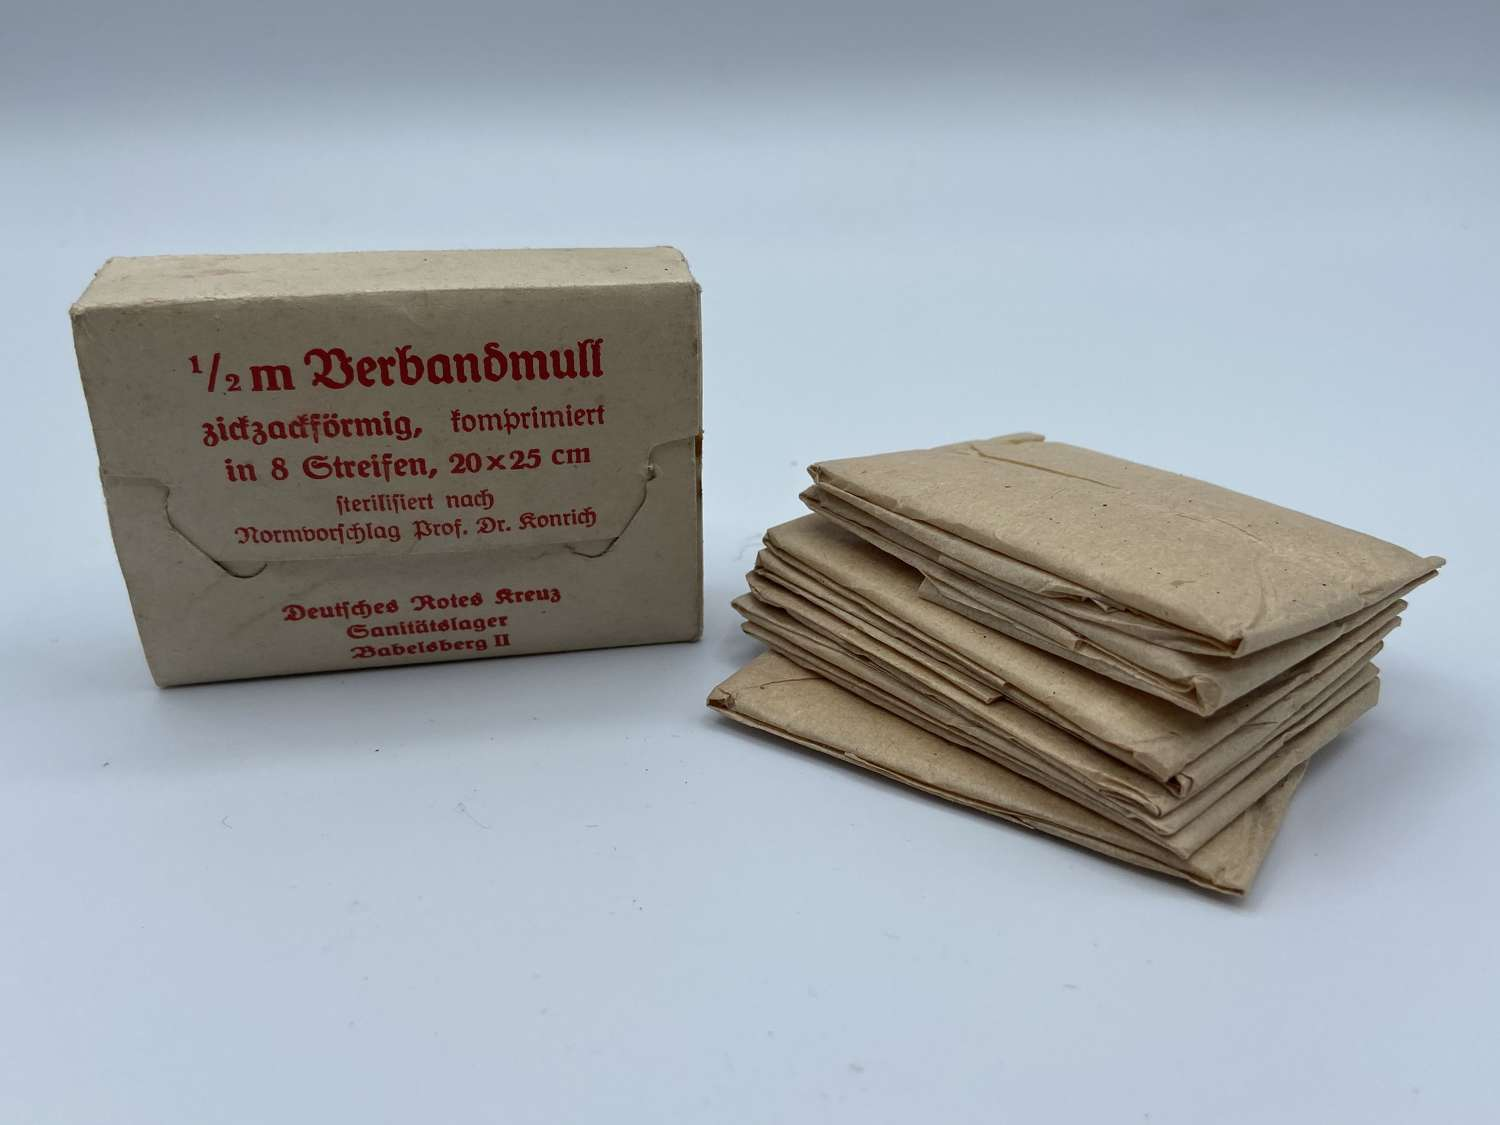 WW2 German Deutsche Rotes Kreuz DRK Babelsberg II POW Camp Bandages